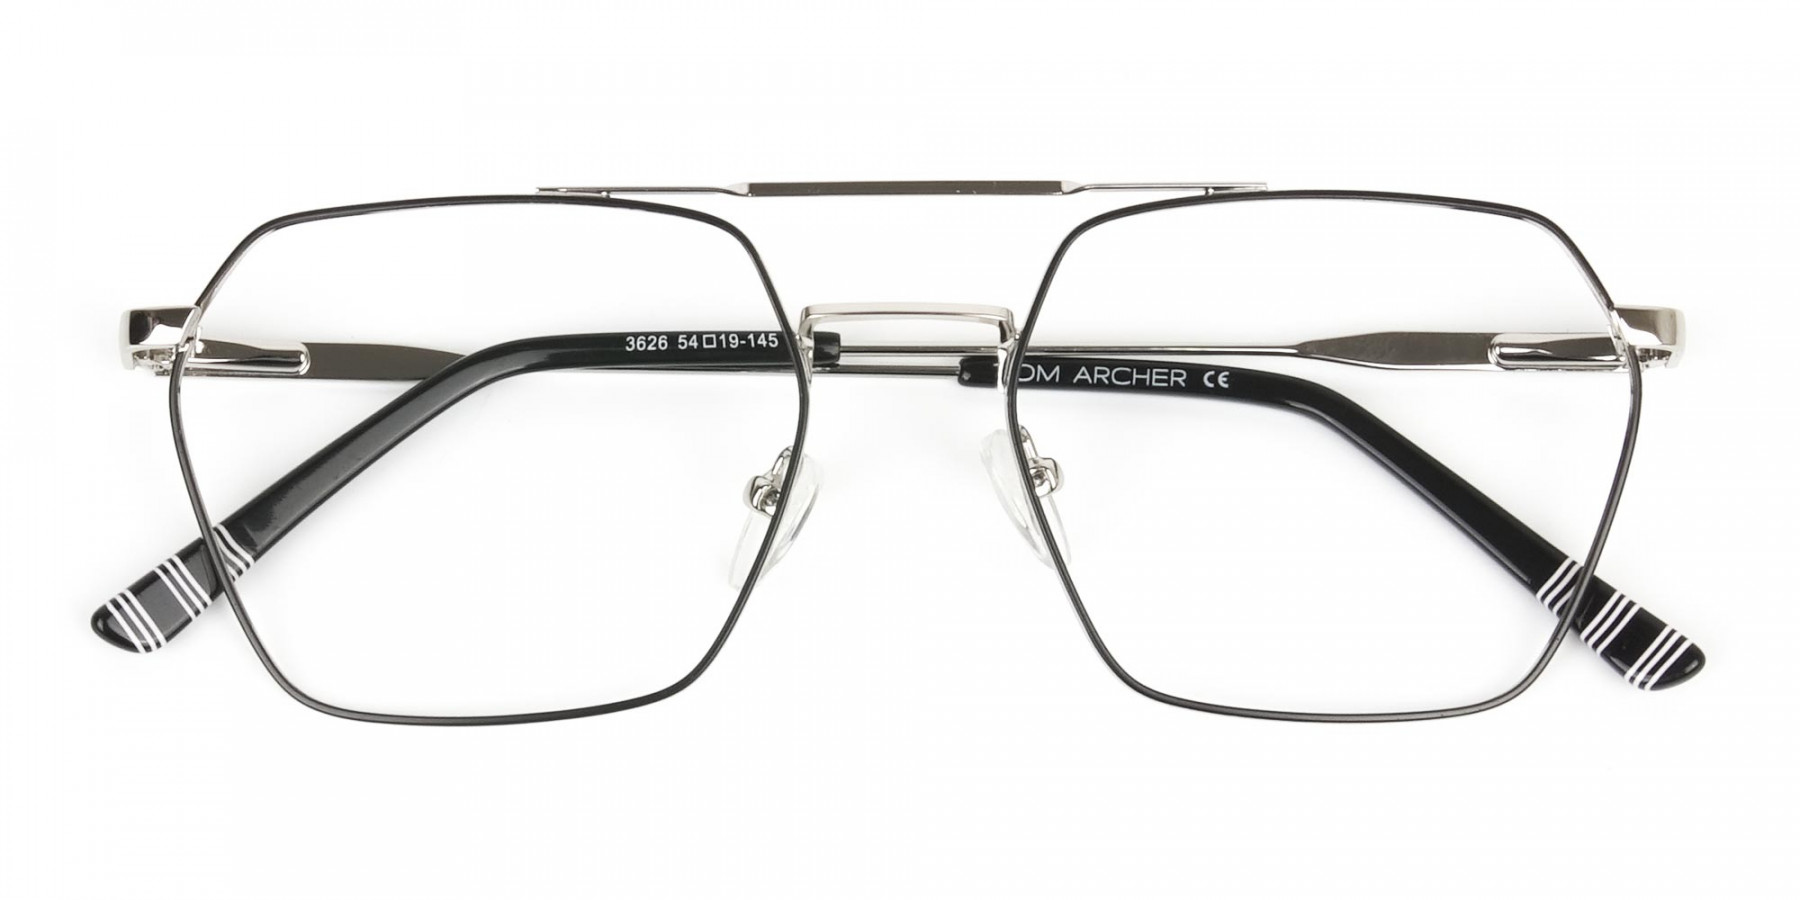 Black & Silver Thin Metal Glasses in Hipster Geometric Frame - 1